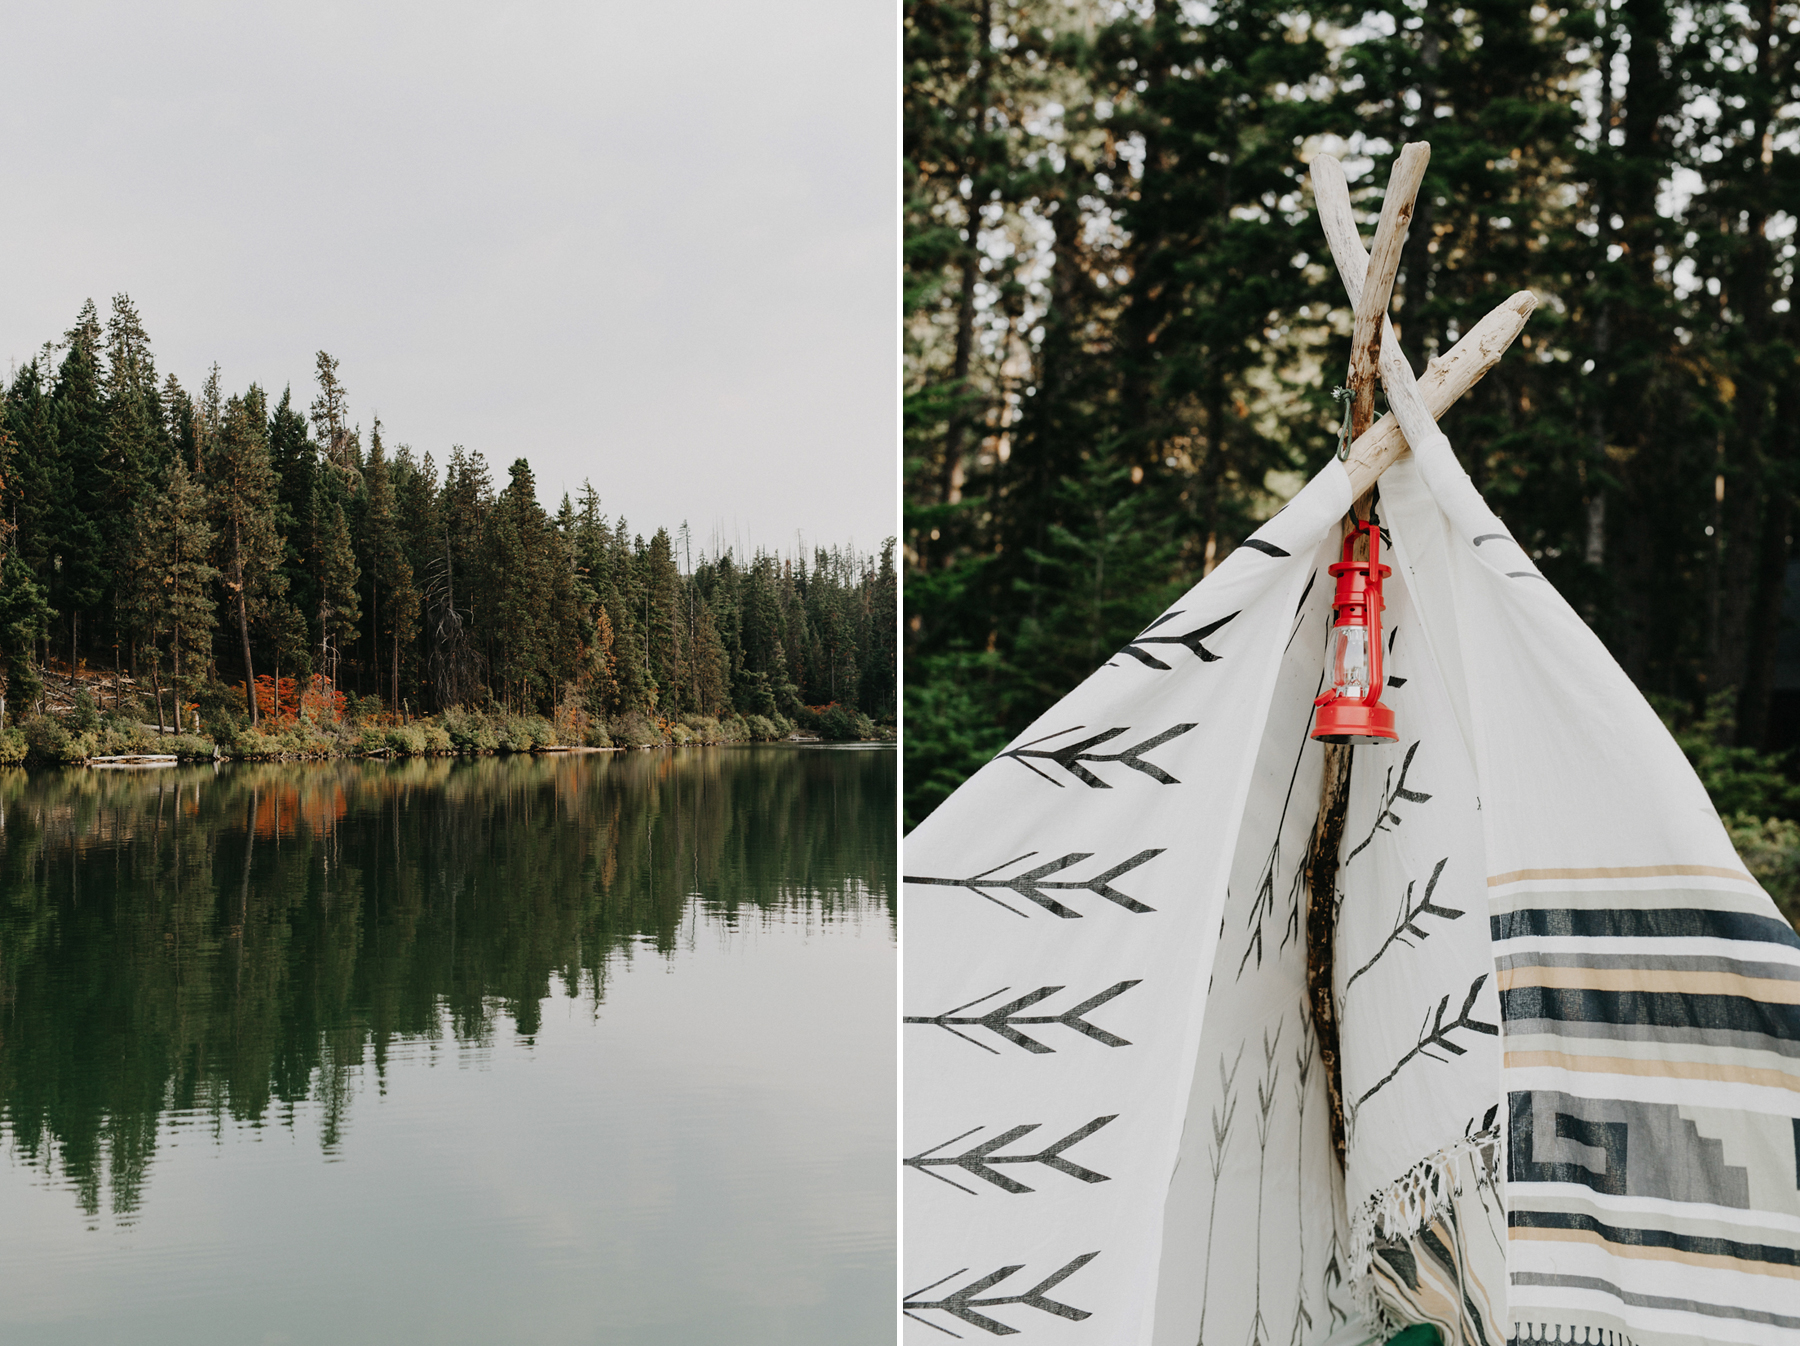 Camping wedding details, a custom teepee set up